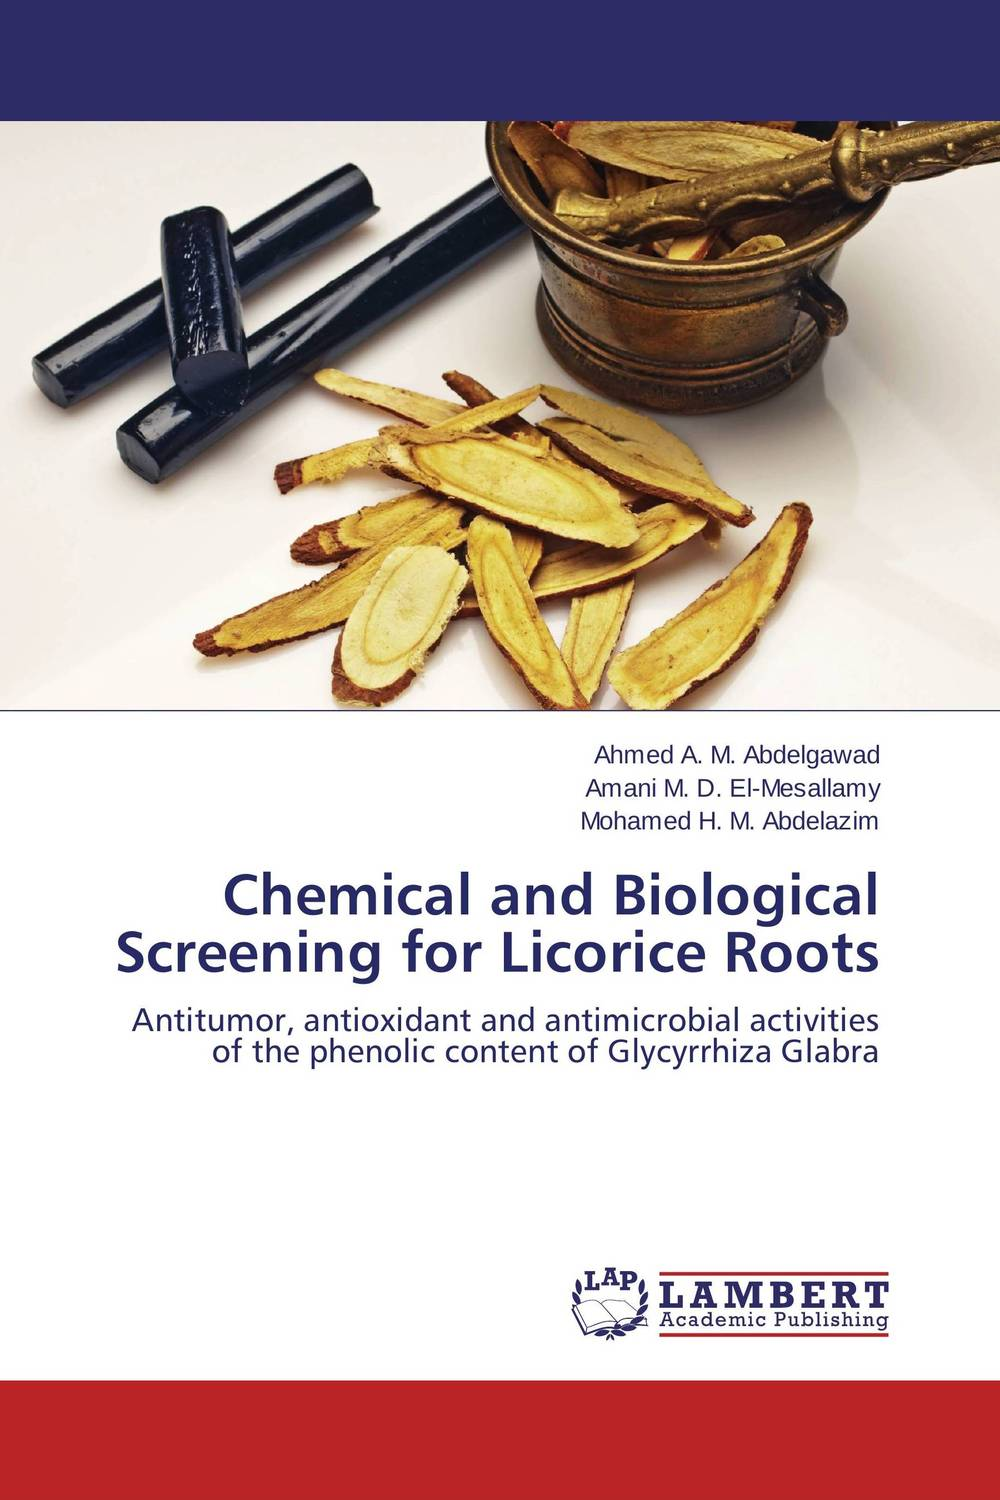 Chemical and Biological Screening for Licorice Roots chemical and biological screening for licorice roots